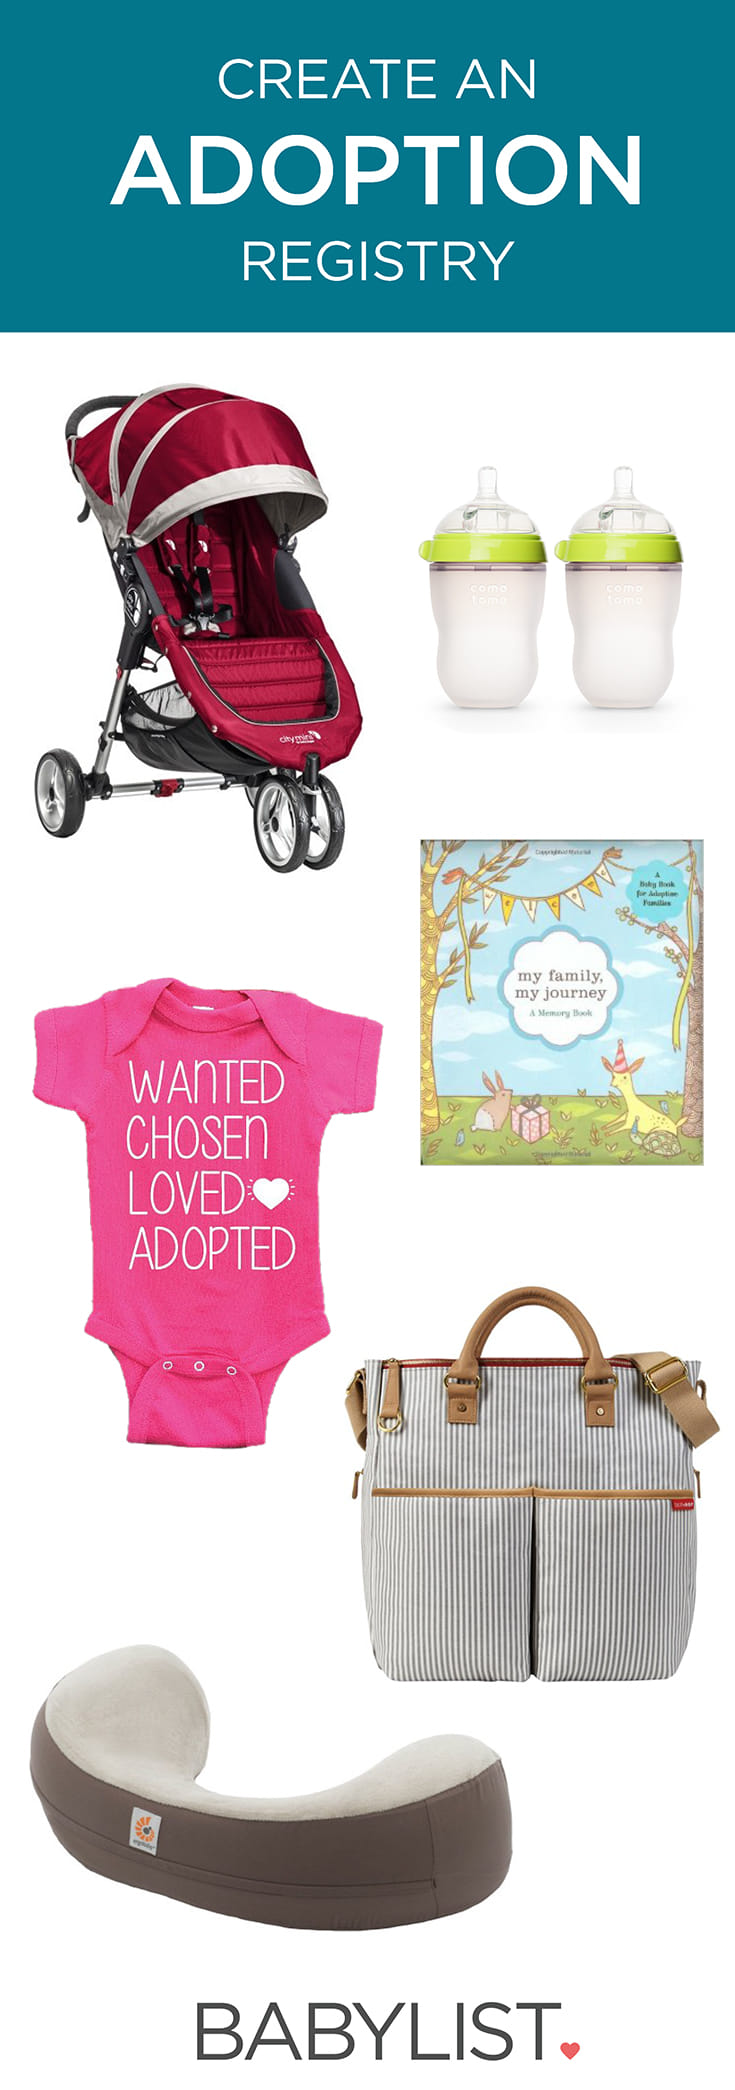 Wondering what gear you'll need and want for your newly adopted child? Here are some lovingly chosen suggestions!